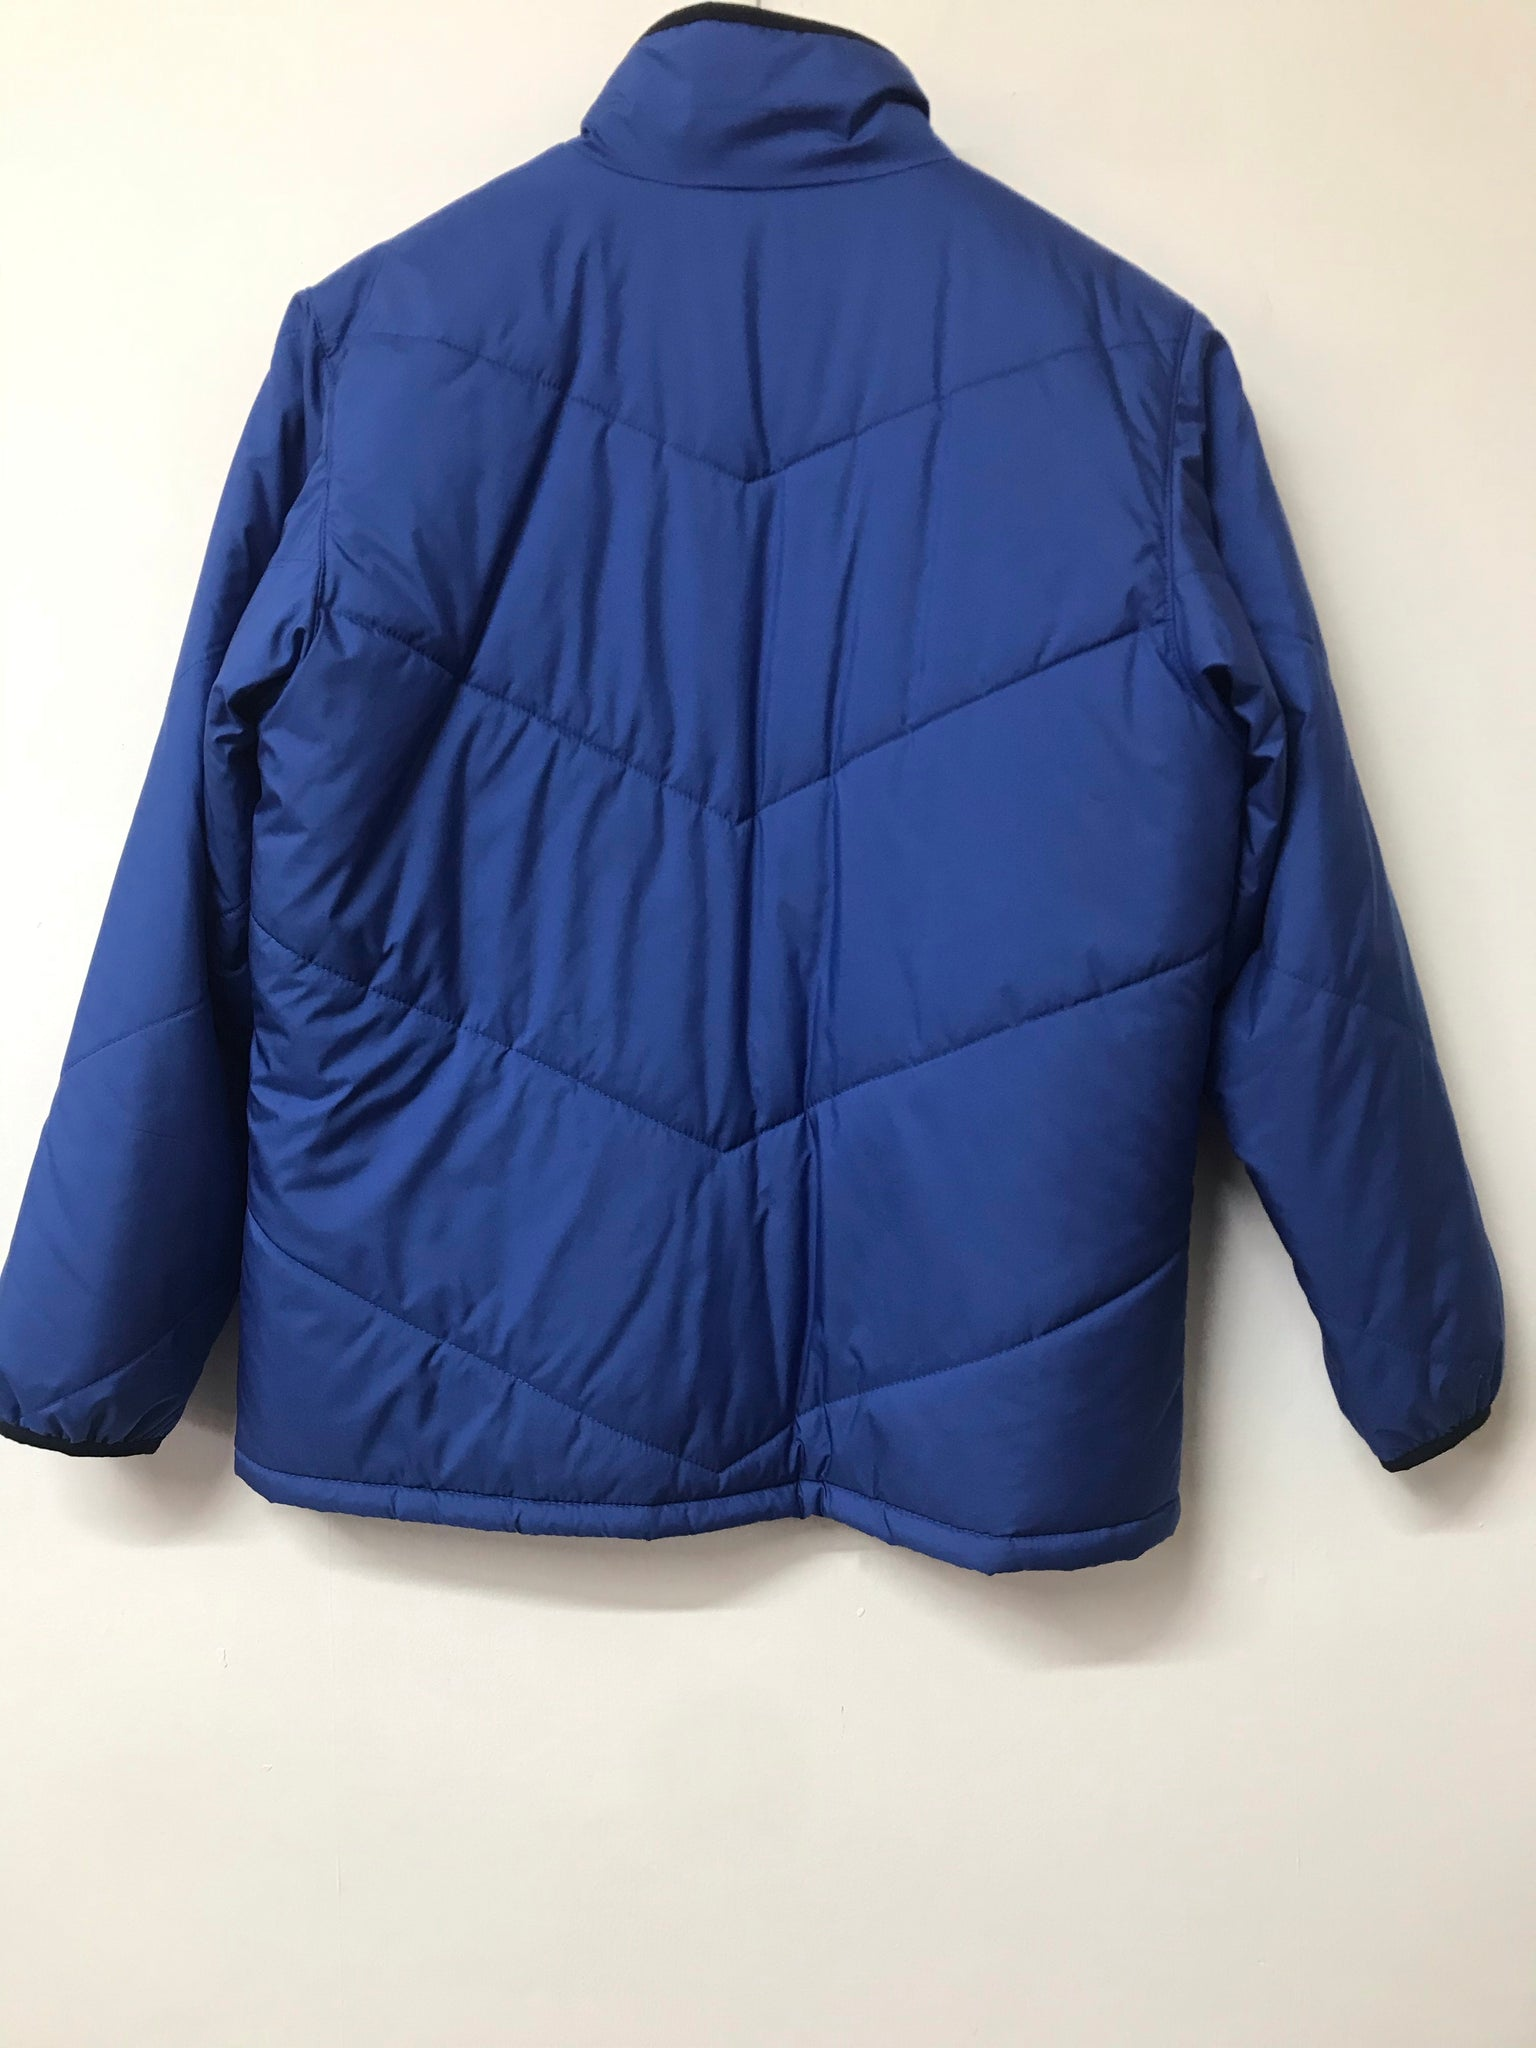 Vintage St Michael Blue Padded Snow Jacket 14